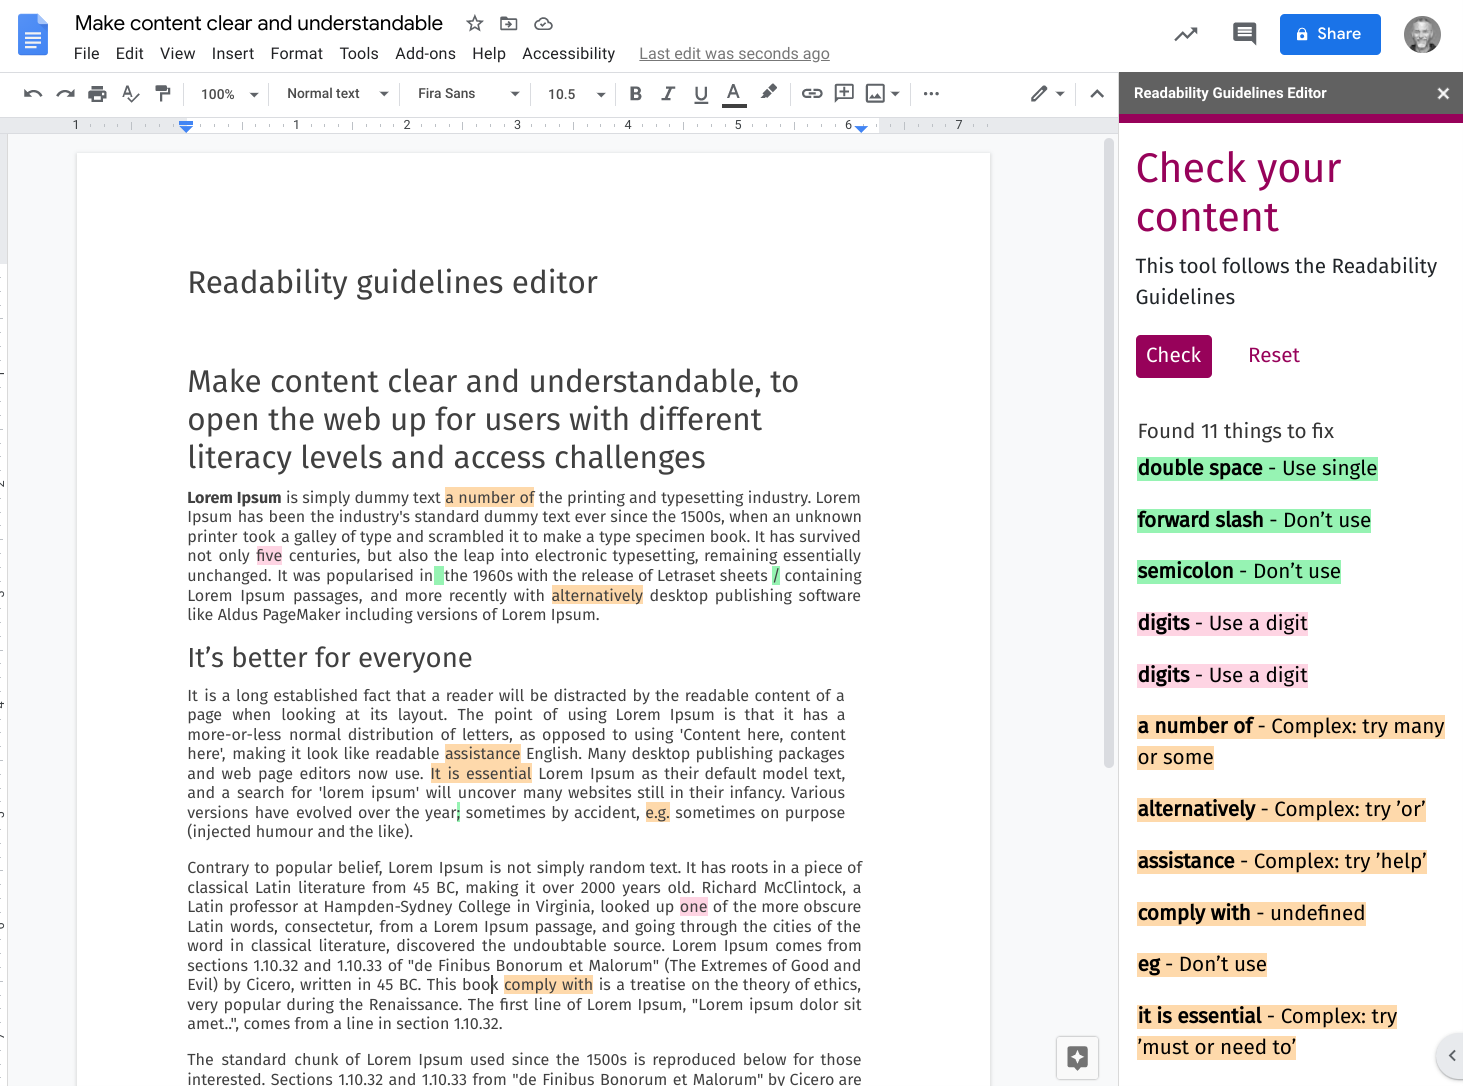 Screenshot of readability guidelines editor